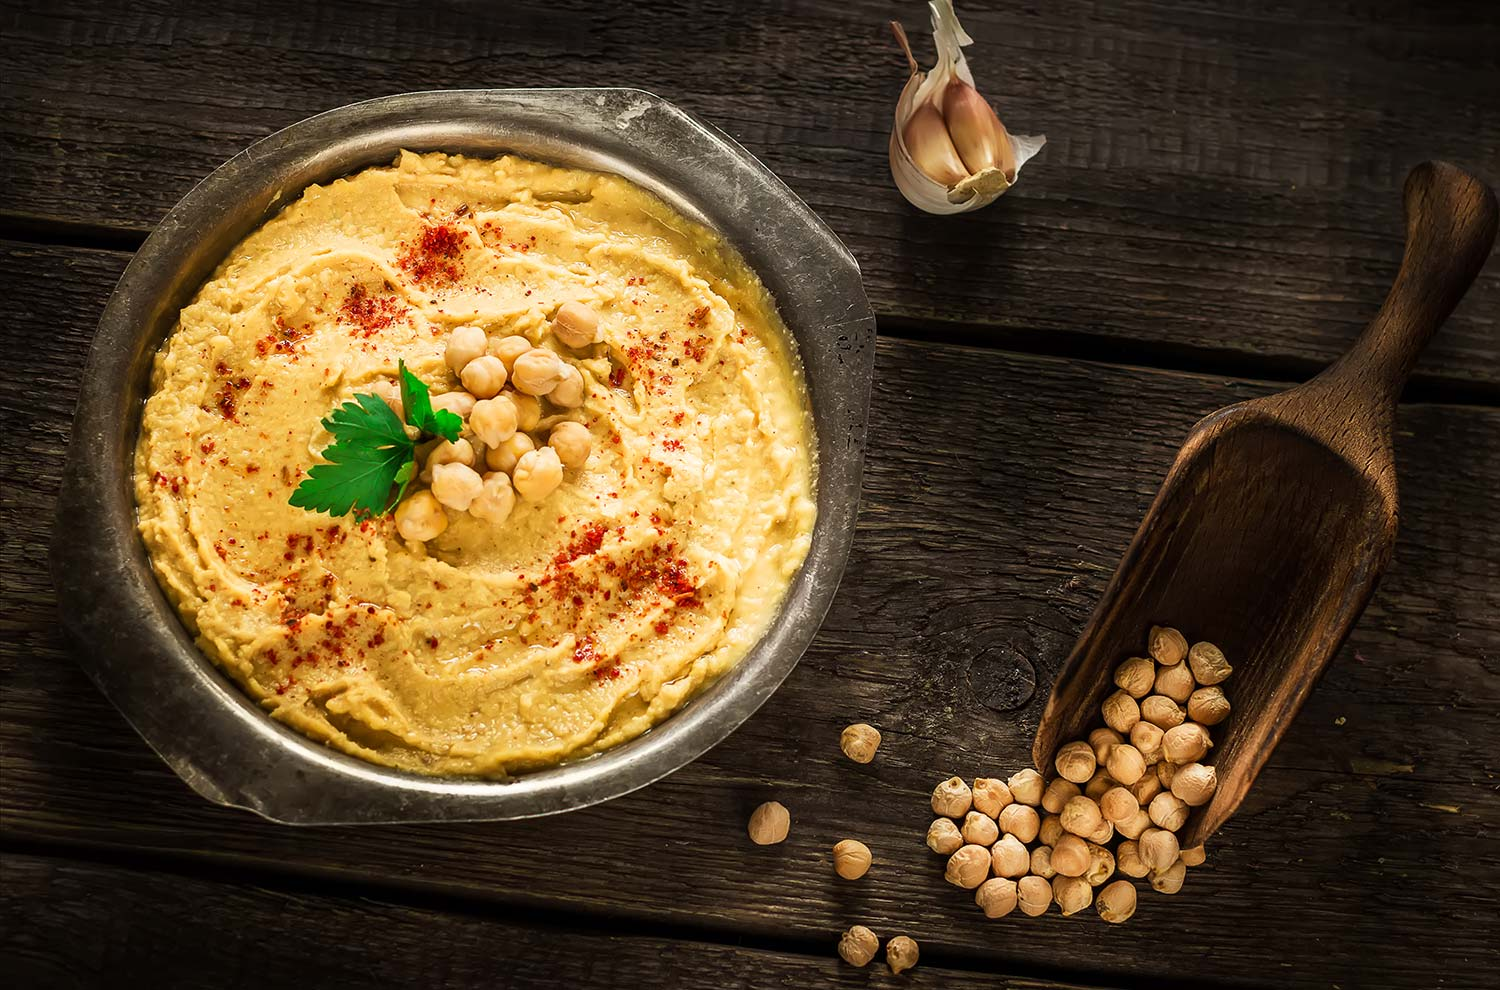 Hummus and Chickpeas